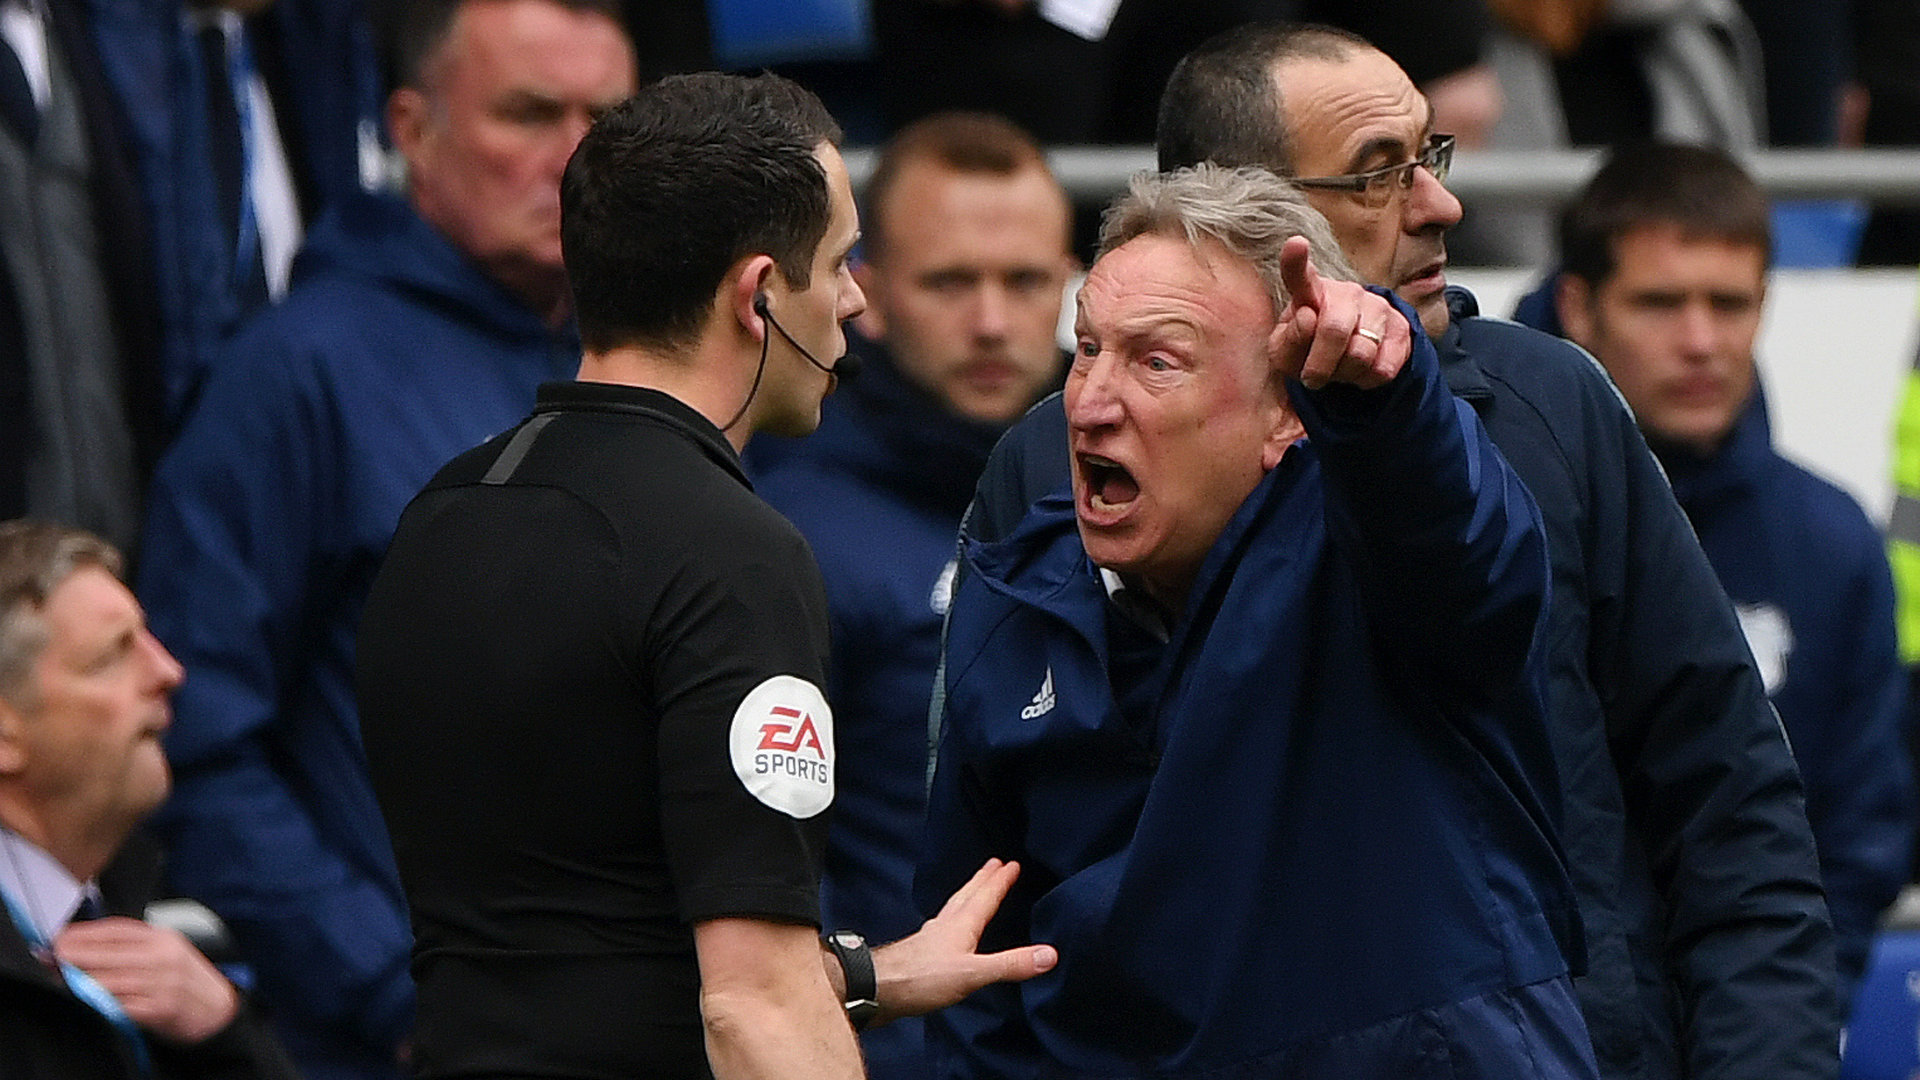 Neil Warnock's conduct was wrong but his message was not